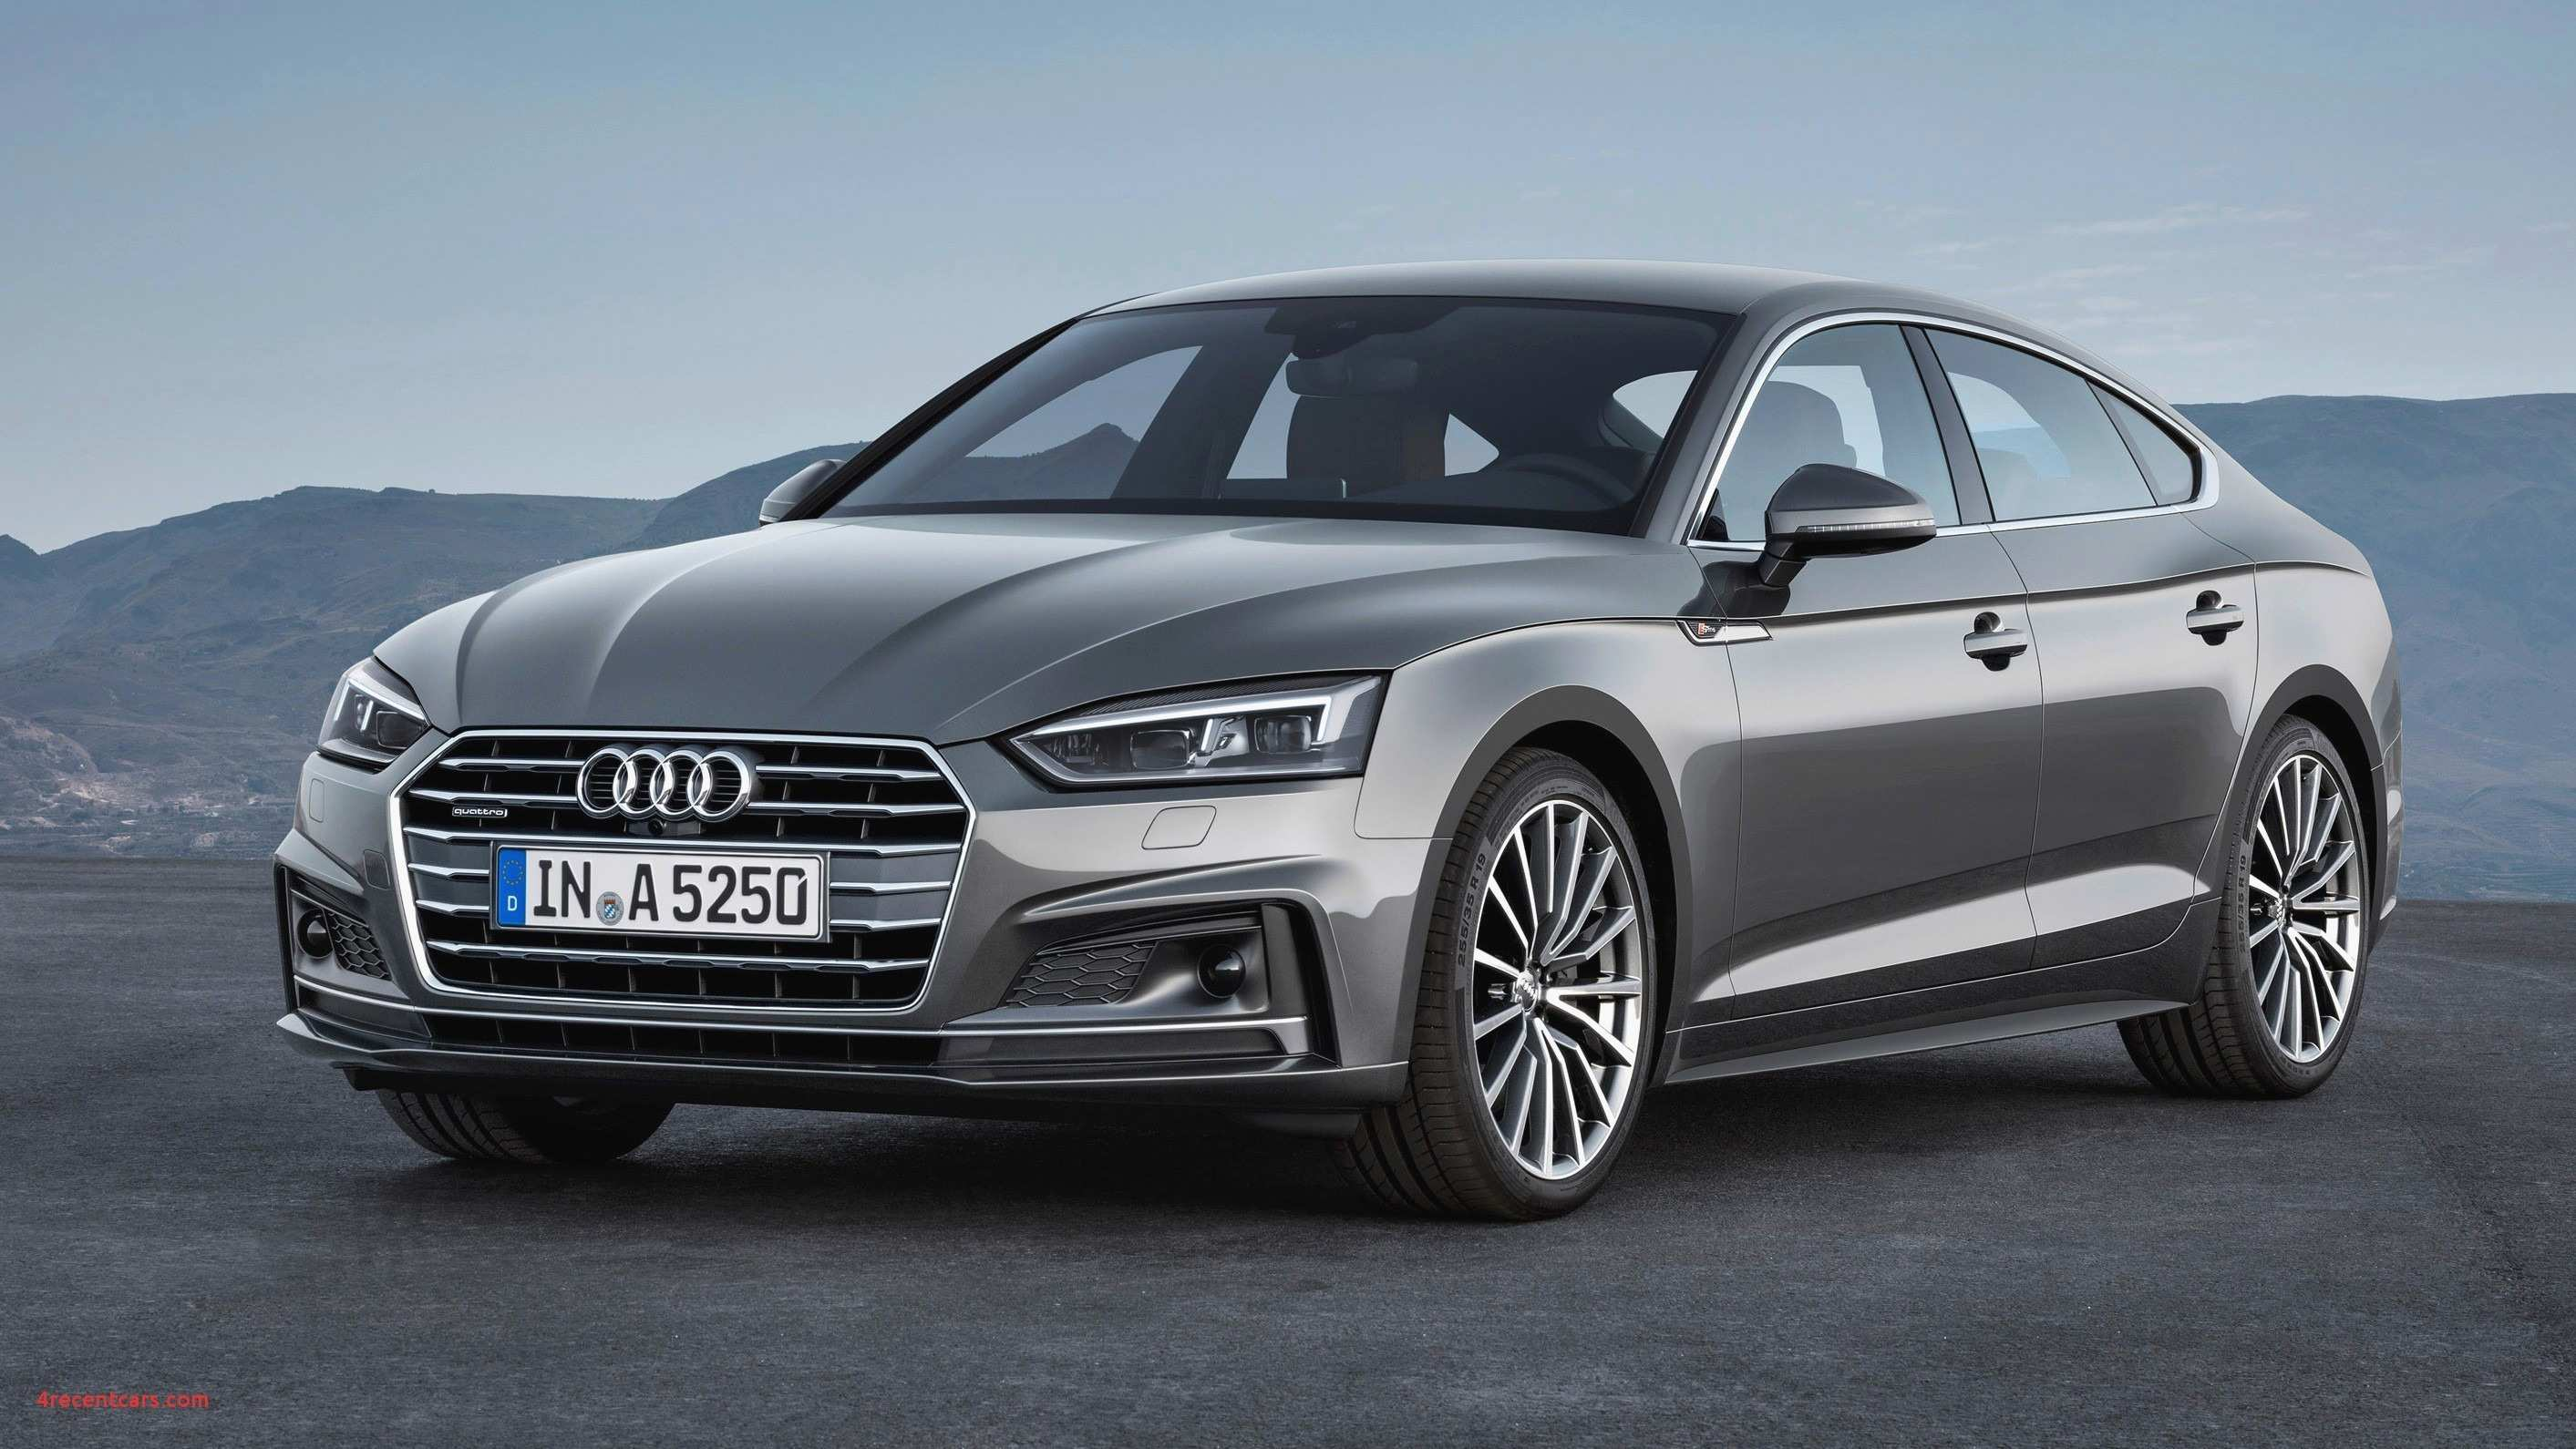 12 All New 2020 Audi A6 2018 Model for 2020 Audi A6 2018